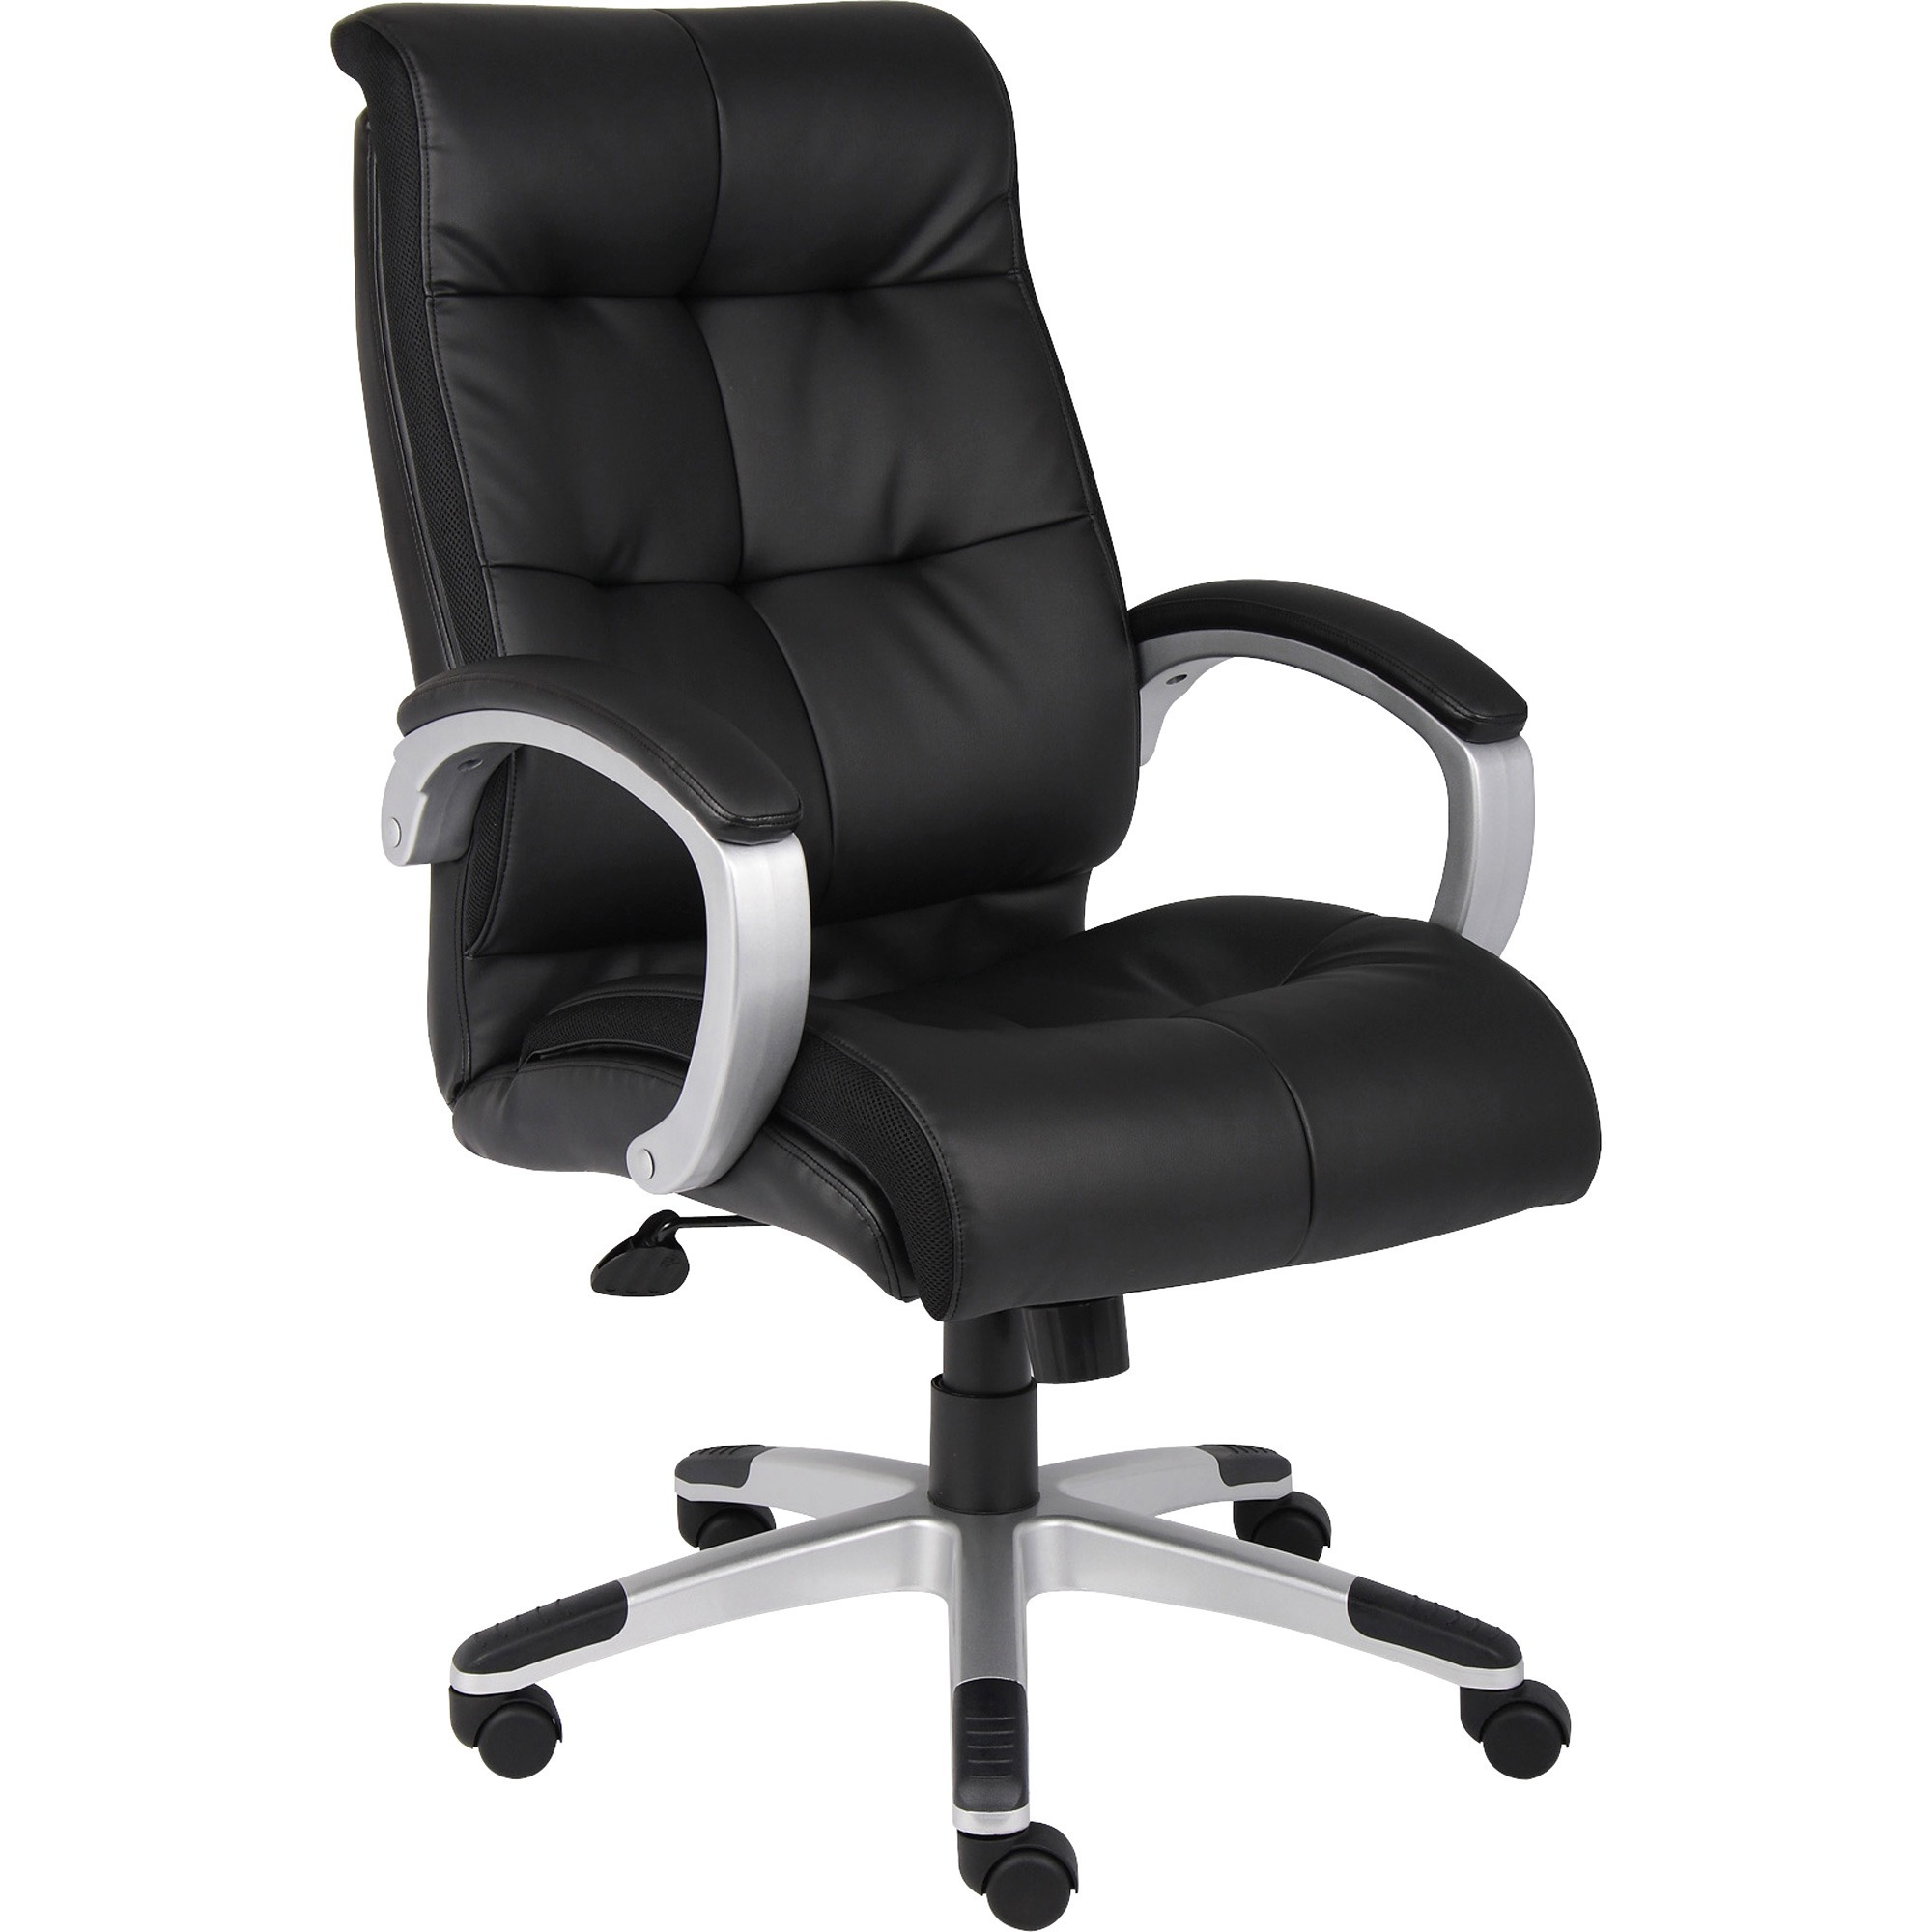 executive chair accessories rocker recliner and a half west coast office supplies furniture chairs